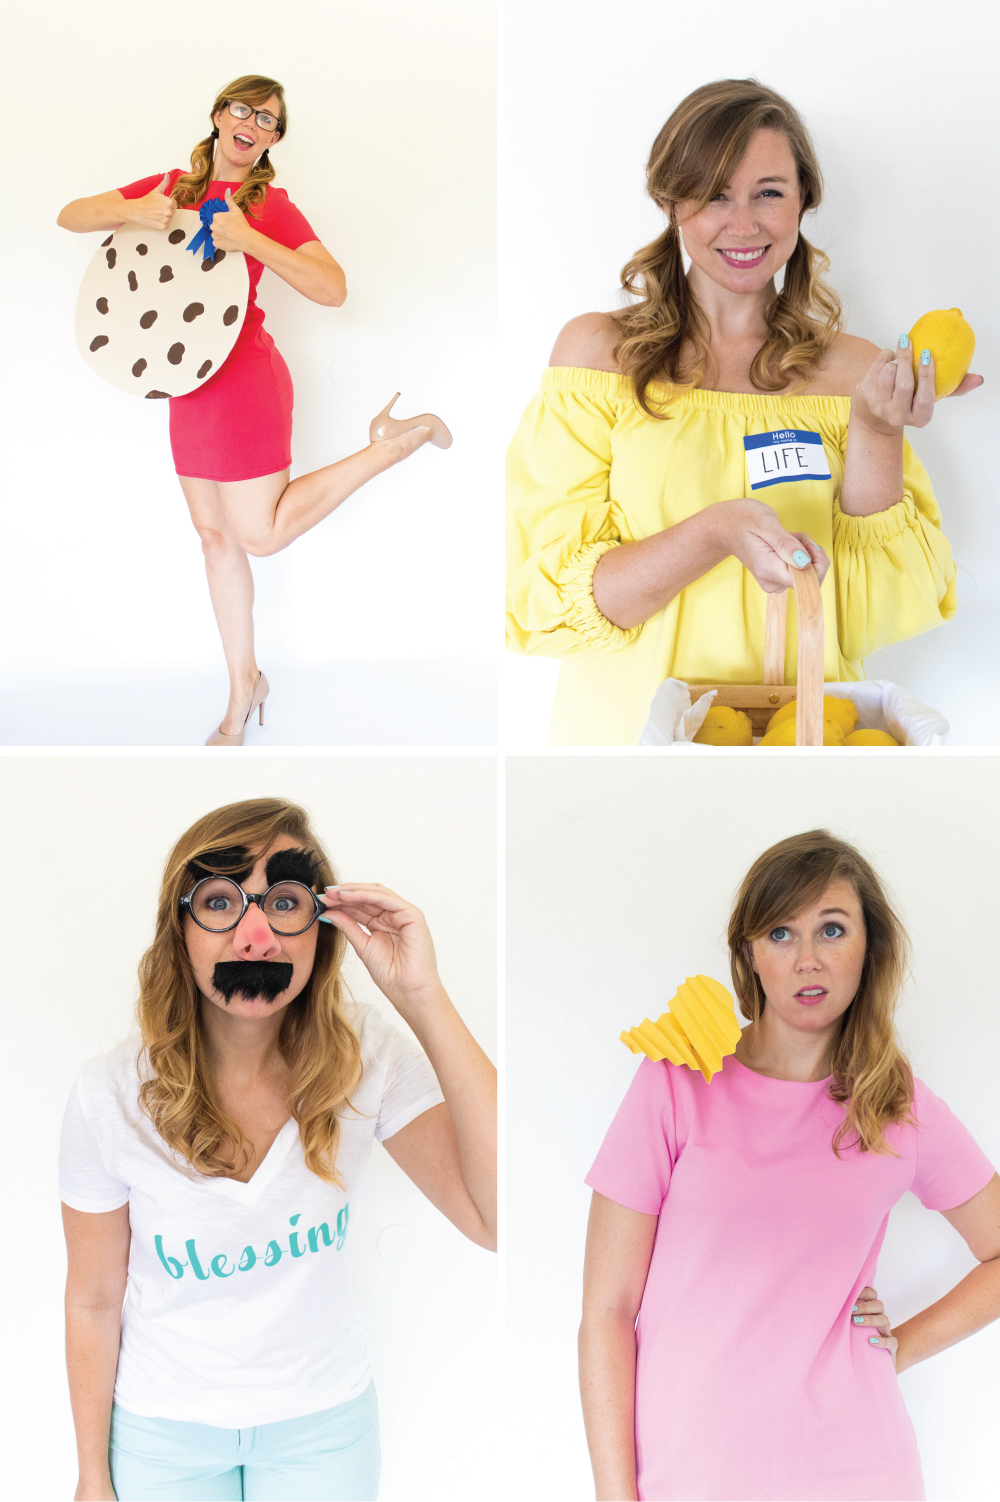 sc 1 st  Club Crafted & 4 Last-Minute Idiom Halloween Costumes | Club Crafted